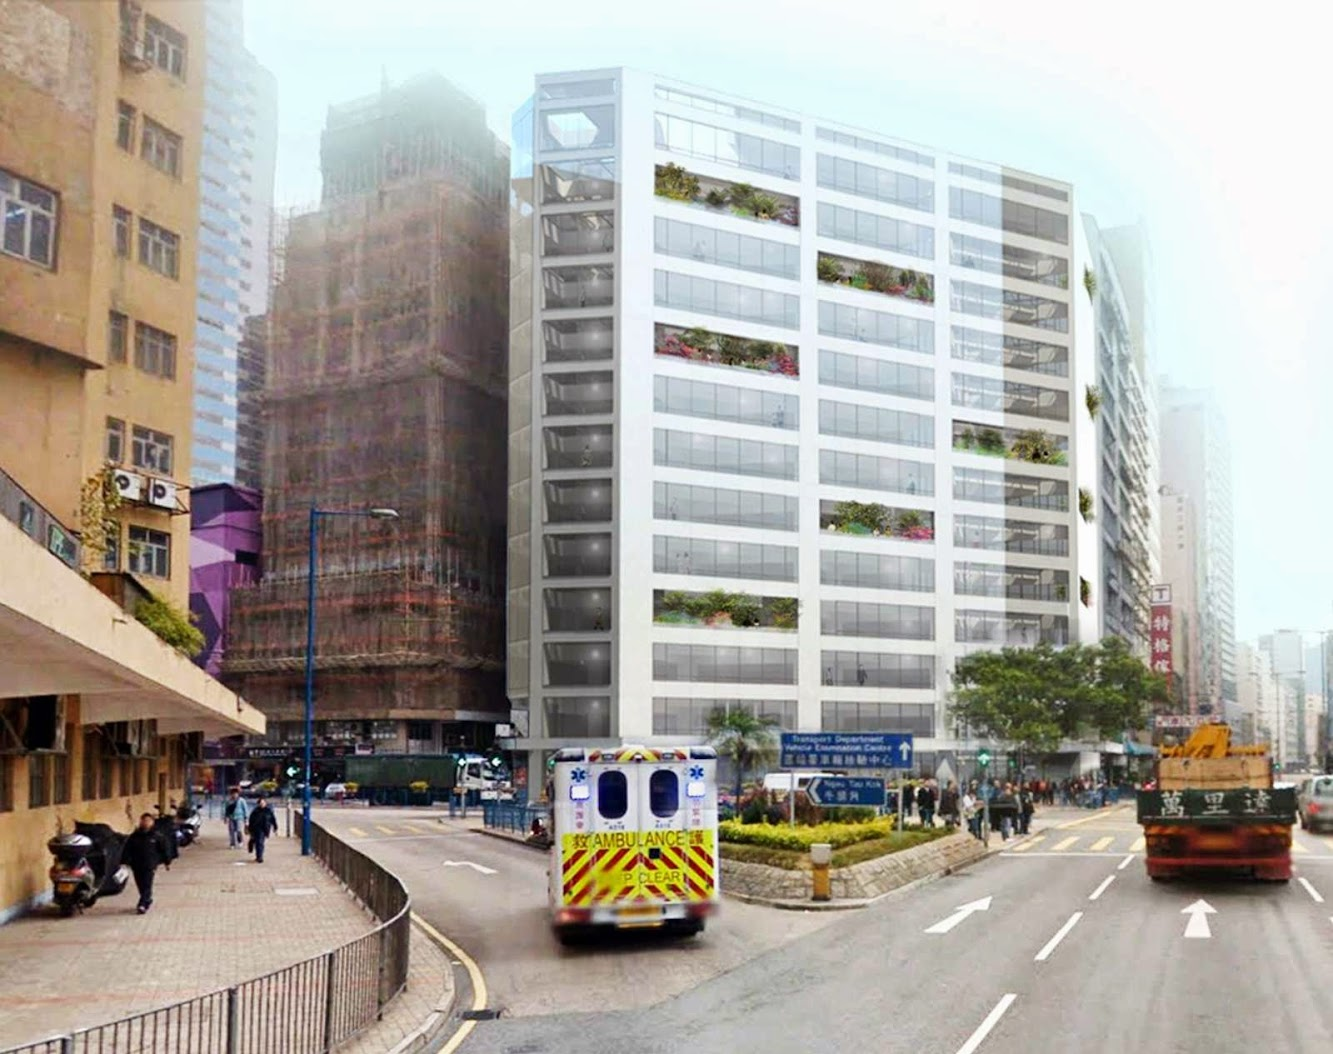 Hong Kong: Cheung Fai Building by Mvrdv